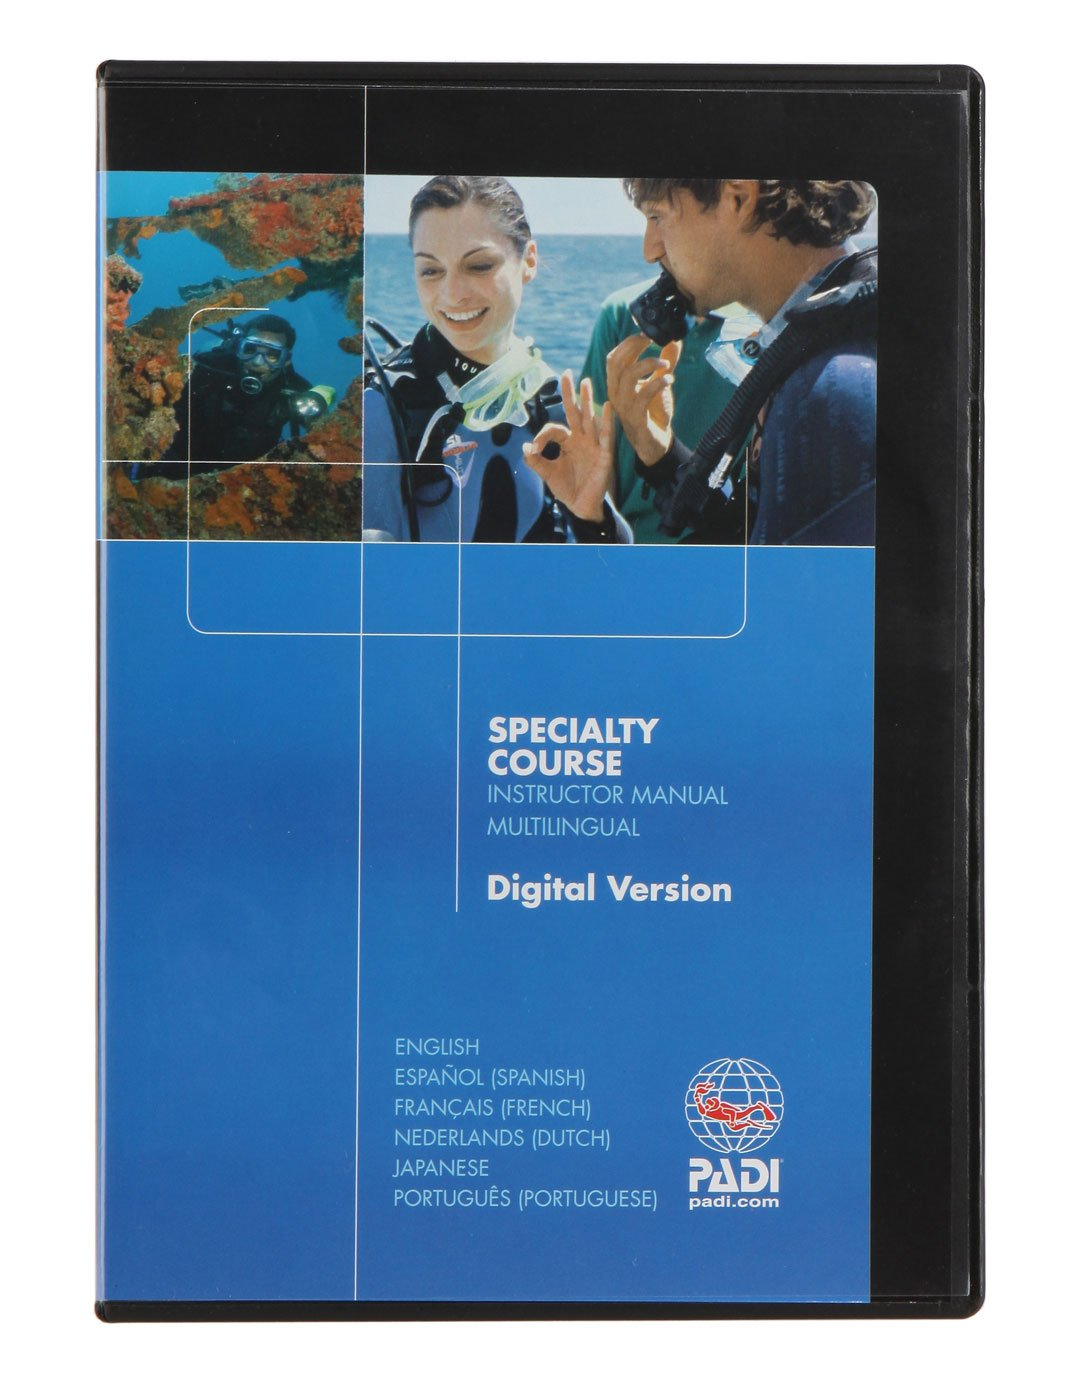 Image of PADI Digital Speciality Instructor Manual - CD ROM